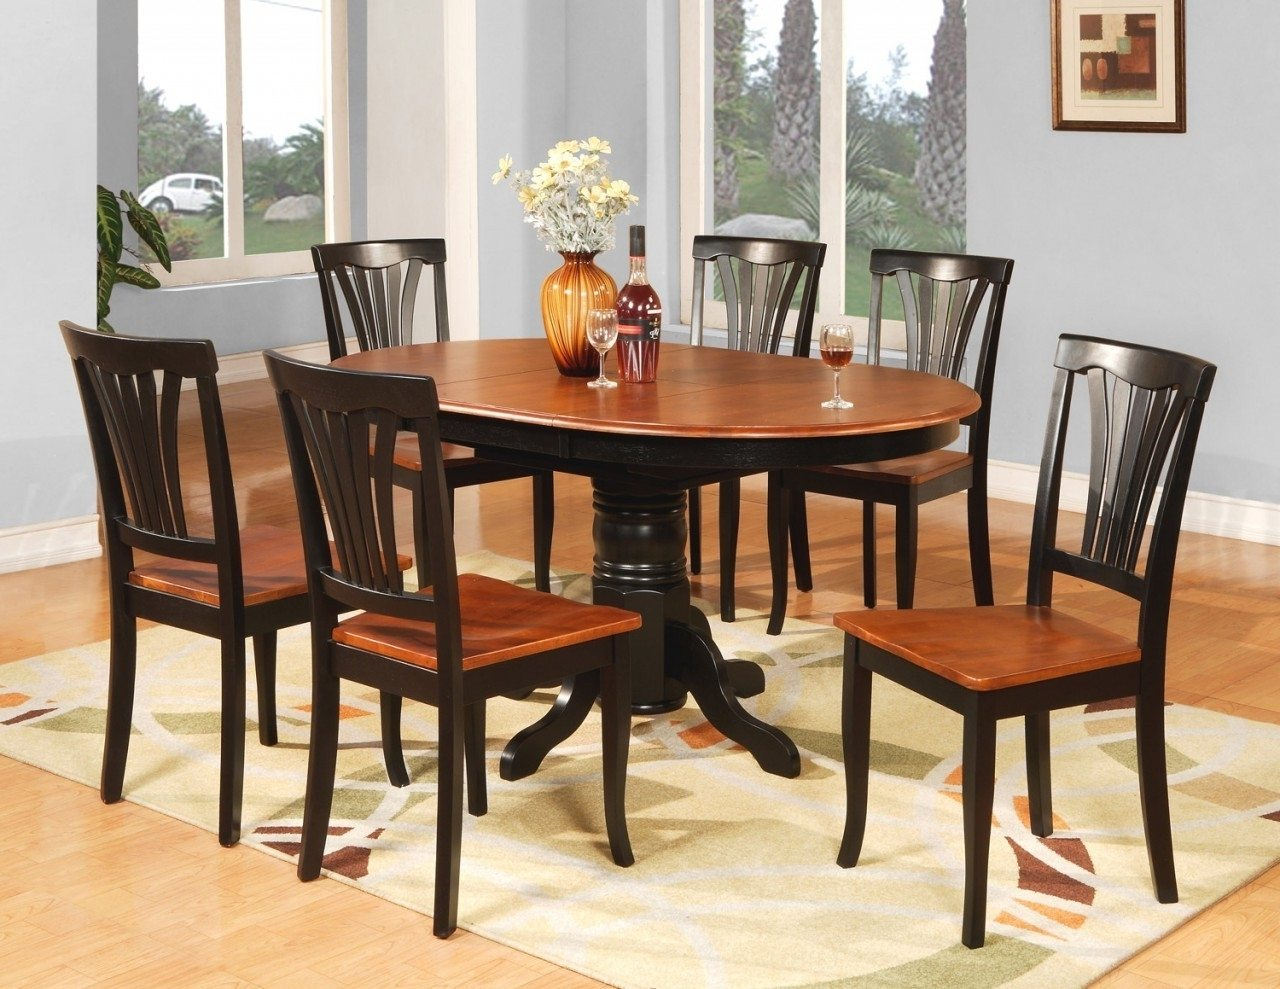 Cheap Dining Room Tables & Chairs – How to Bargain for Cheap Dining Room Sets 27 Cheap Dining